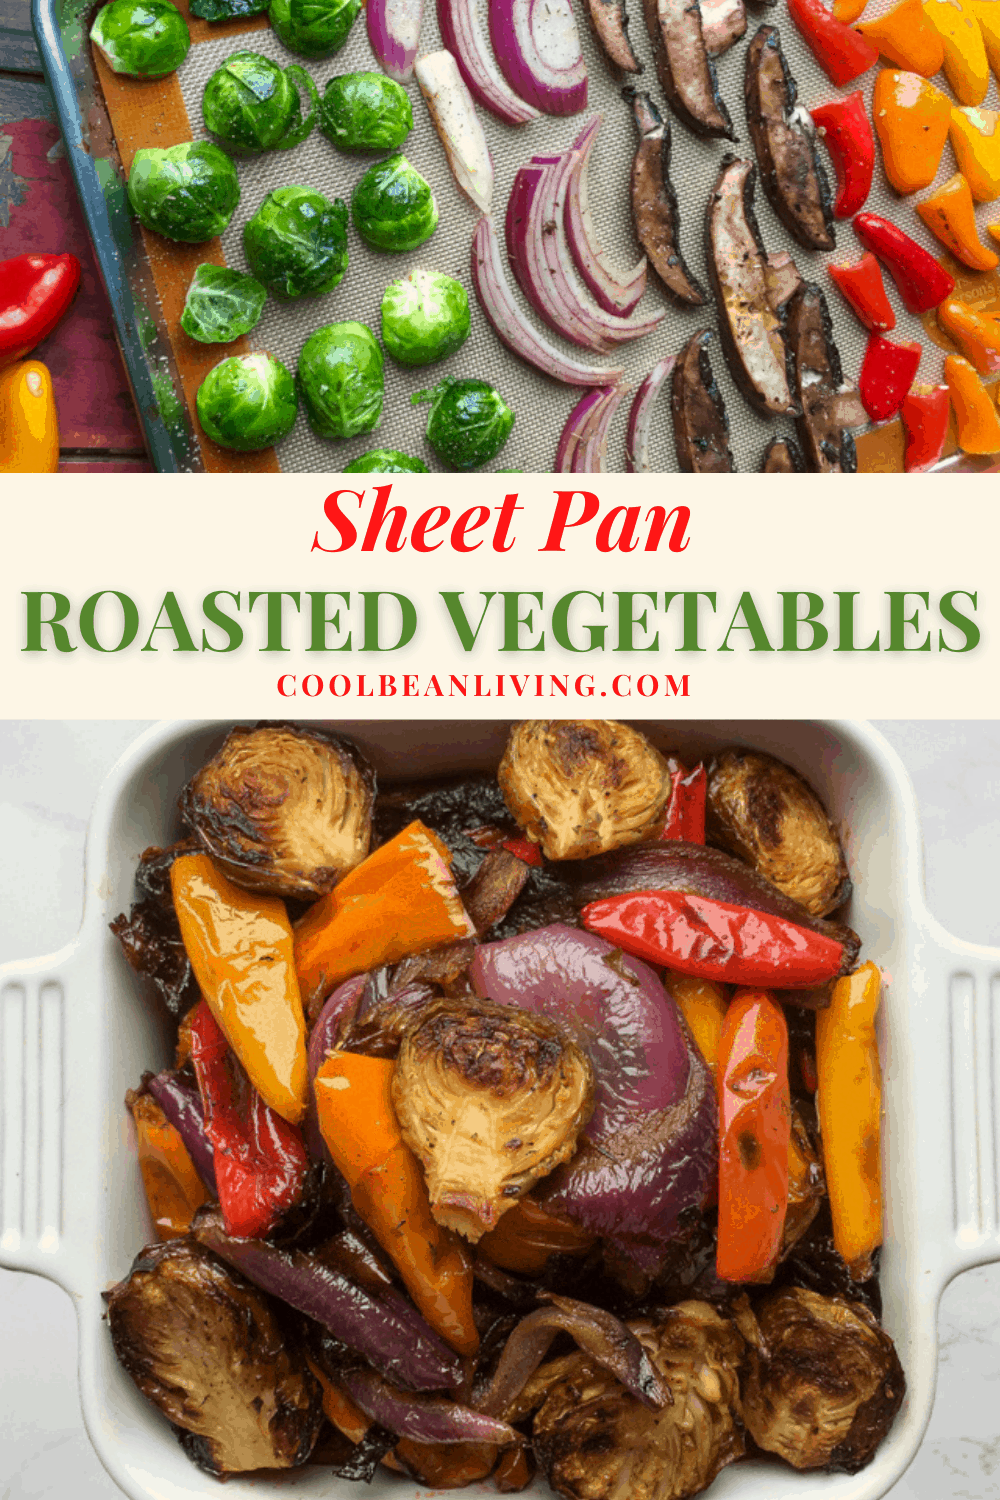 Sheet Pan vegetables